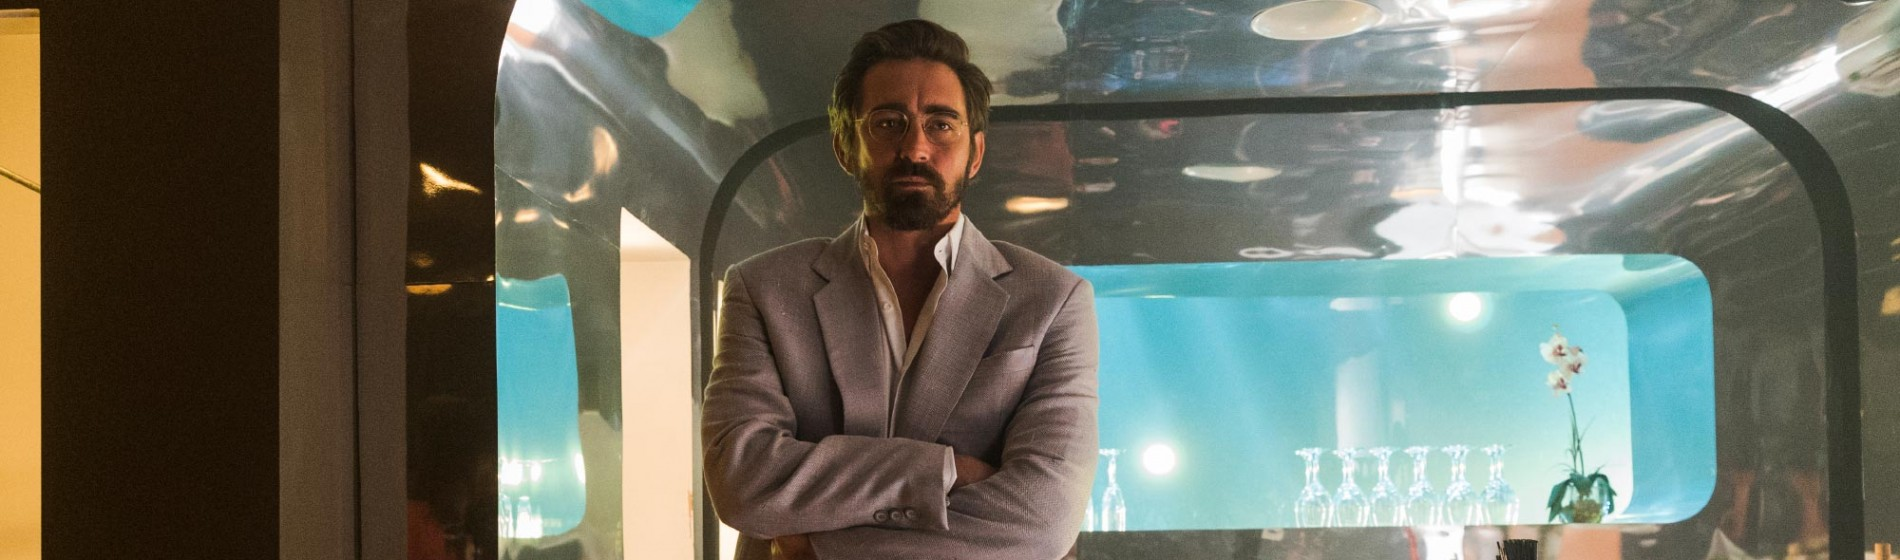 Halt and Catch Fire Episode 304